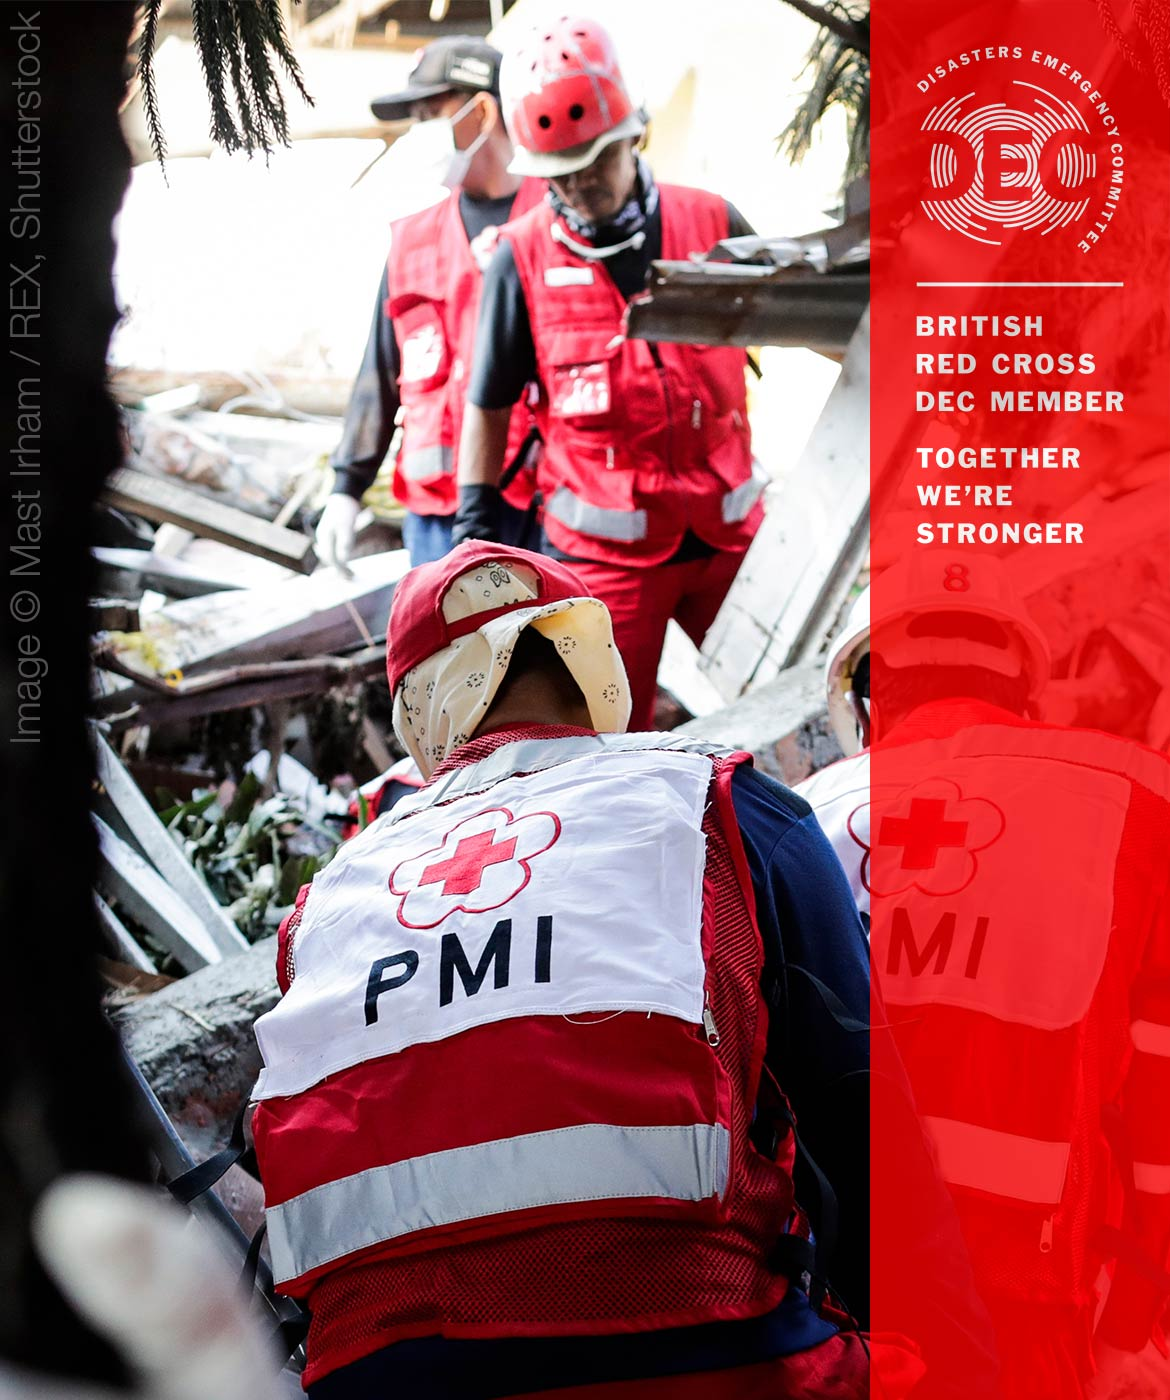 Indonesian Red Cross members sorting through debris after the tsunami